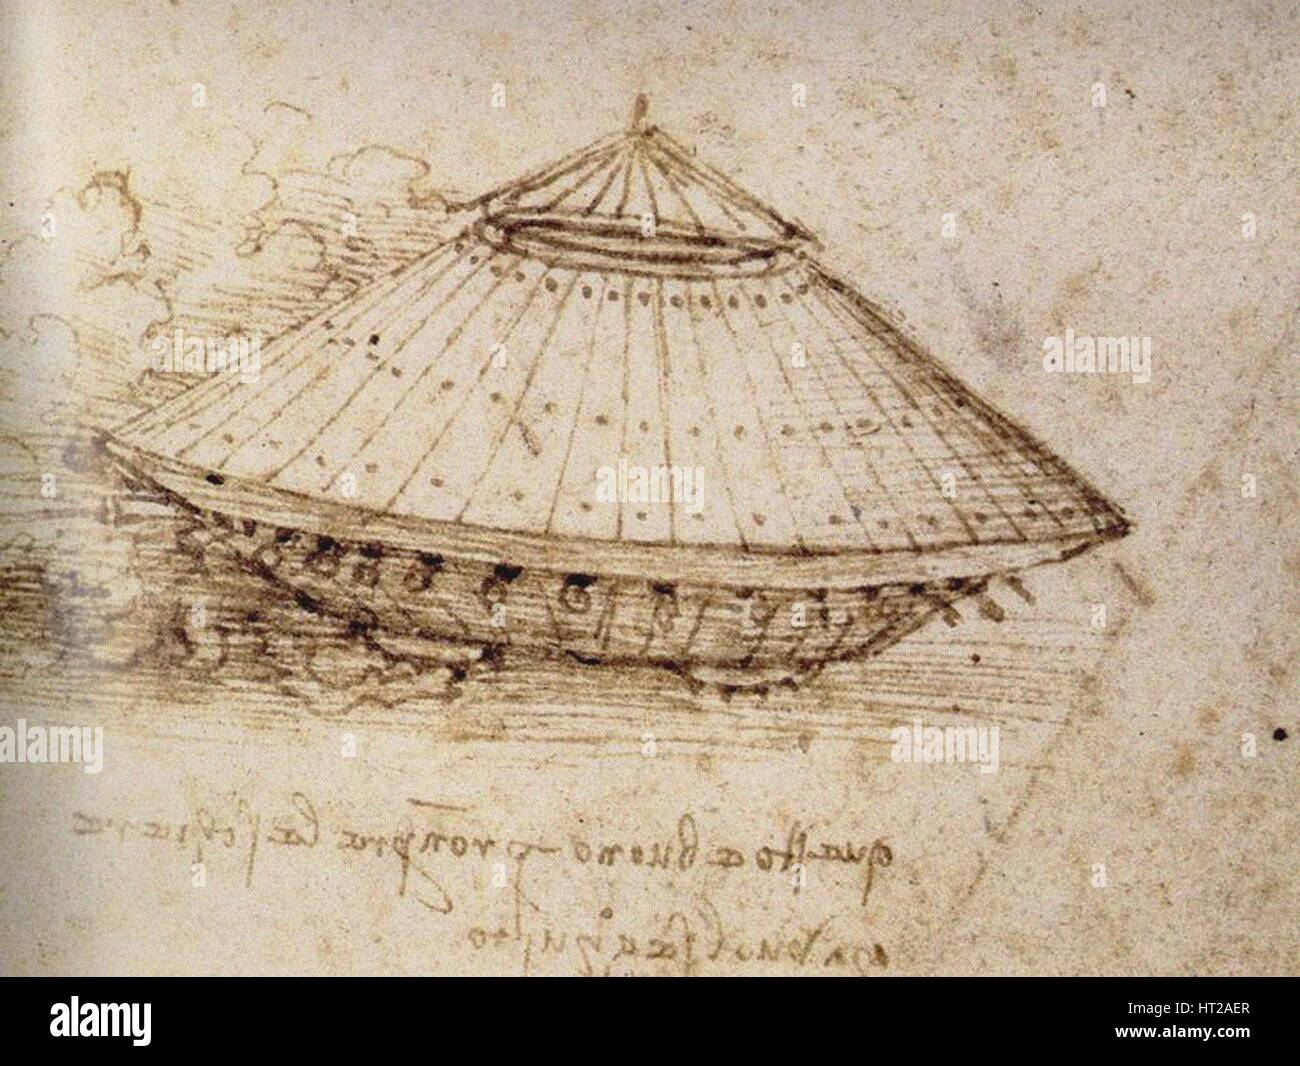 Drawing of an armoured tank, ca 1485. Artist: Leonardo da Vinci (1452-1519) - Stock Image